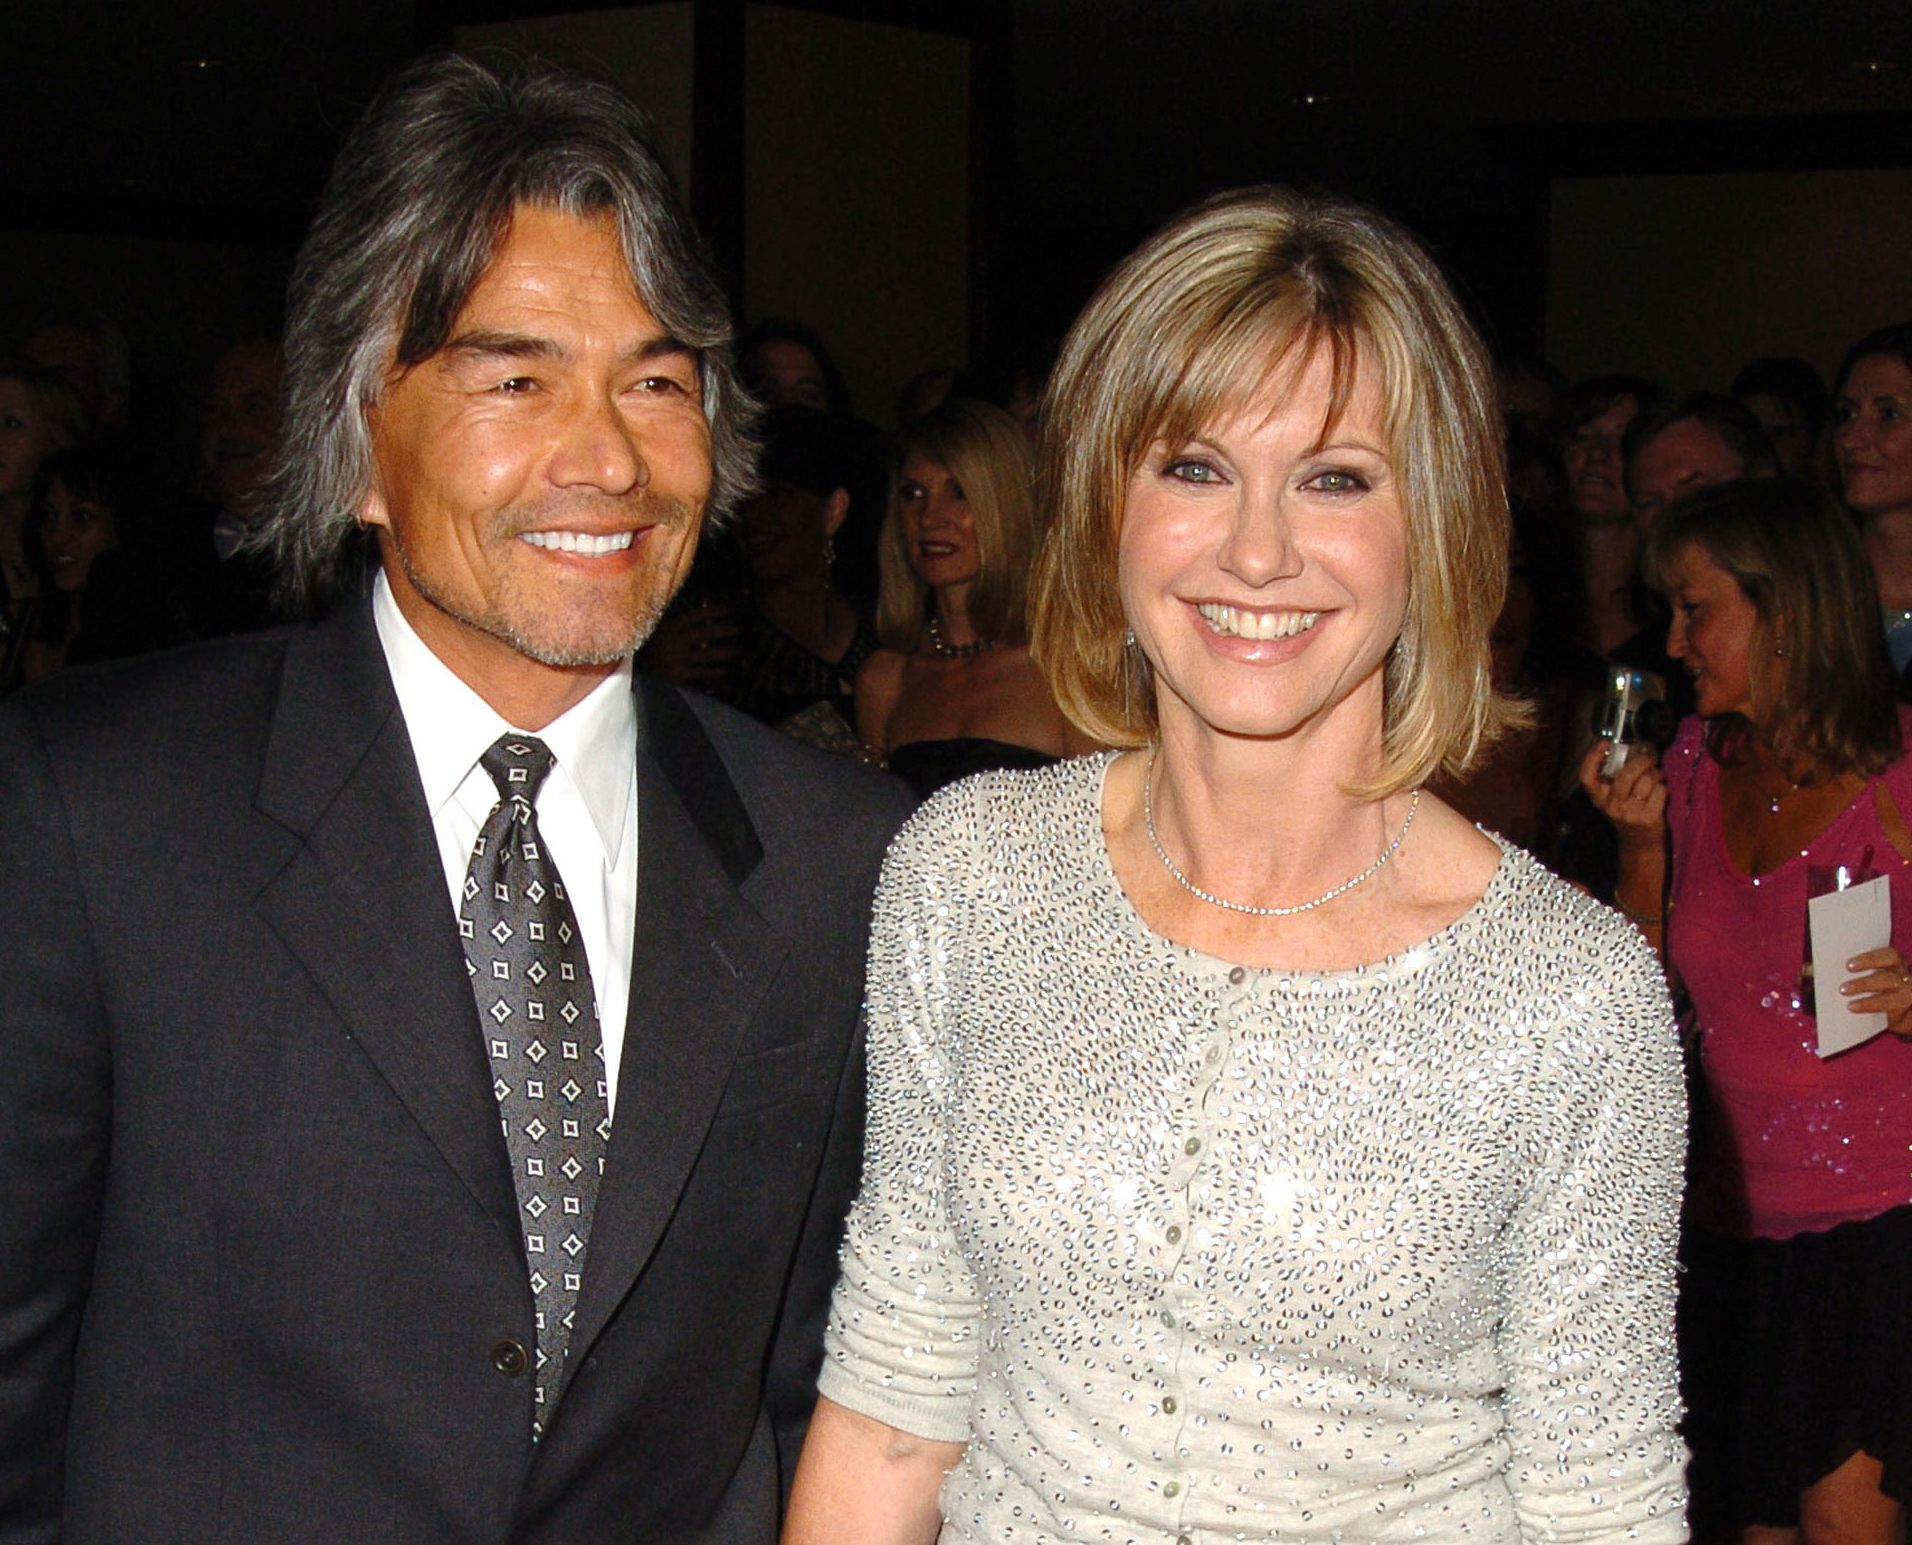 Olivia Newton-John's ex boyfriend who went missing 12 years ago 'may have been found in Mexico'